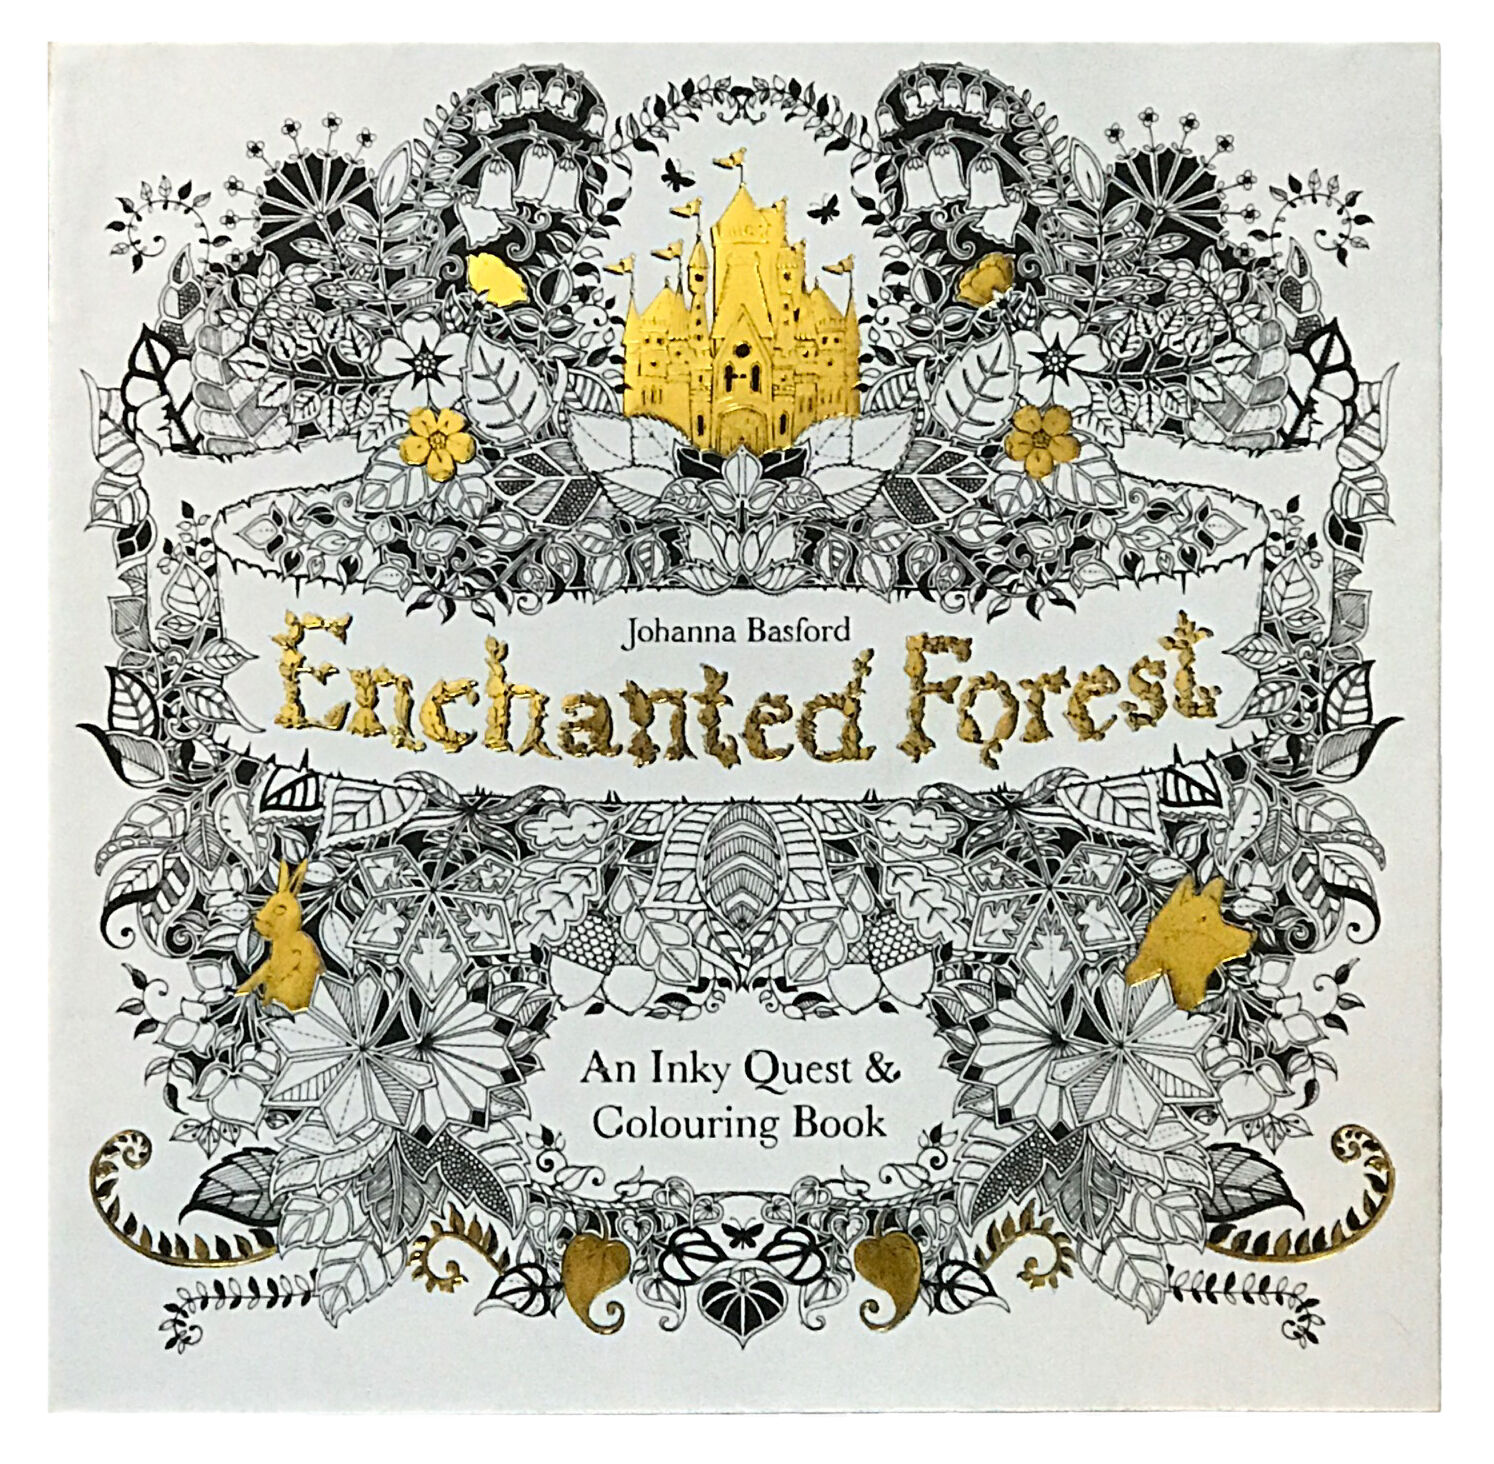 Enchanted Forest An Inky Quest And Coloring Book By Johanna Basford 2015 Paper